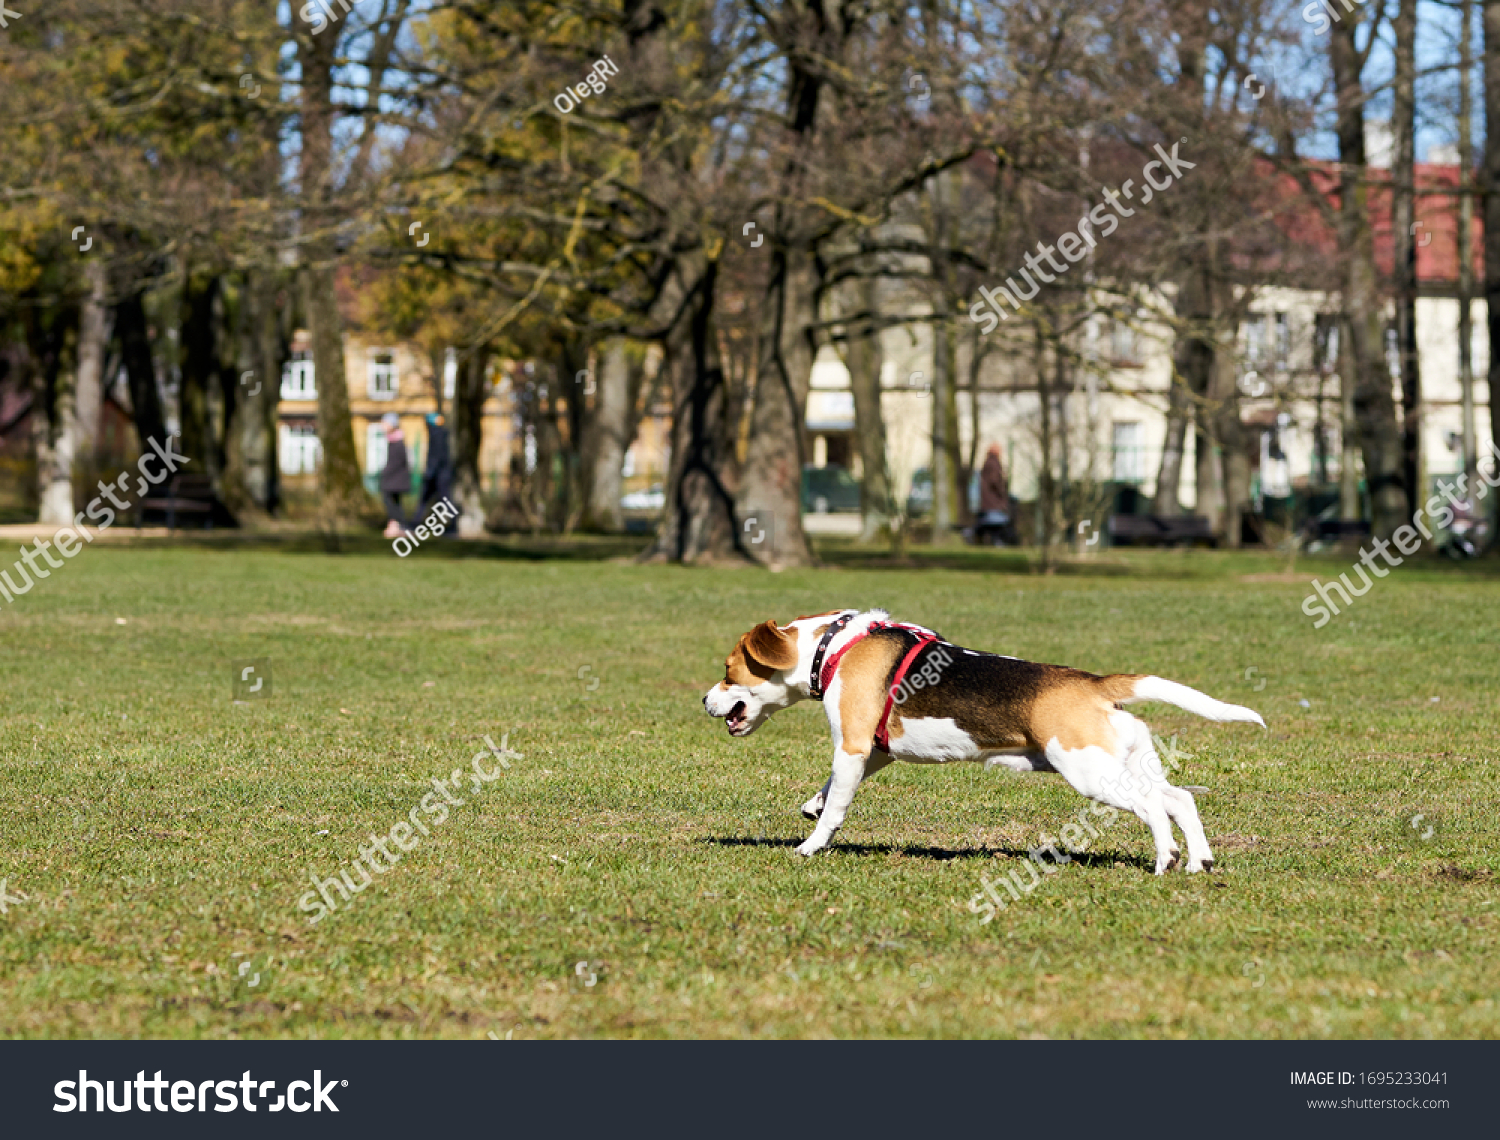 Show dog of breed of beagle on a natural green background #1695233041